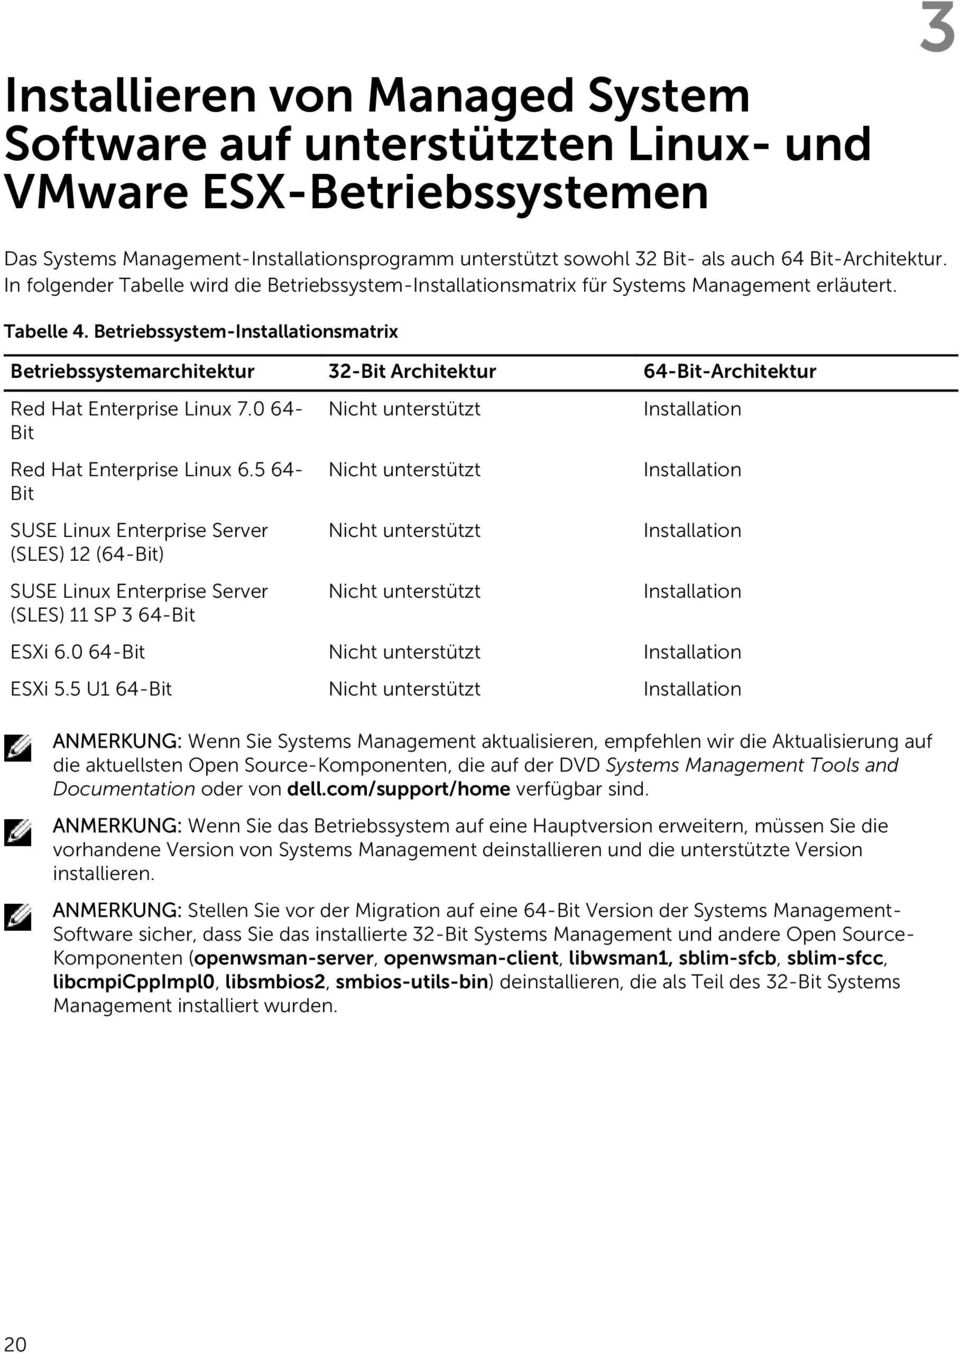 Betriebssystem-Installationsmatrix Betriebssystemarchitektur 32-Bit Architektur 64-Bit-Architektur Red Hat Enterprise Linux 7.0 64- Bit Red Hat Enterprise Linux 6.